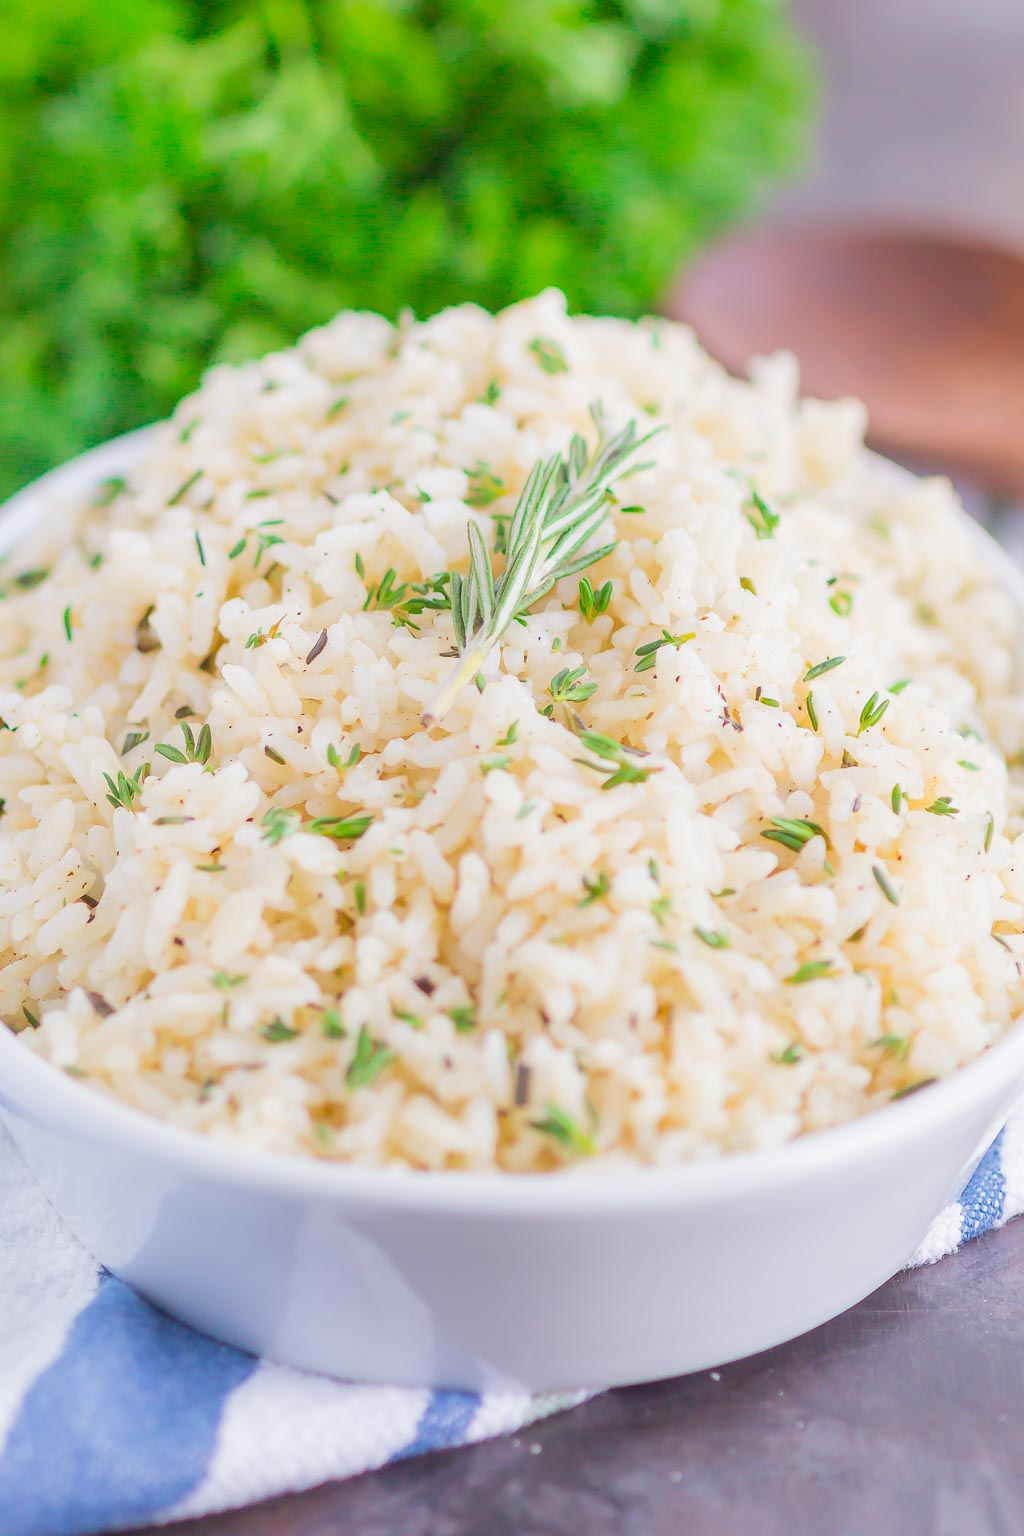 Garlic Herb Rice is a simple side dish that's ready in just 20 minutes. A mixture of fresh herbs, garlic and butter make this easy dish loaded with flavor and perfect to accompany any meal!